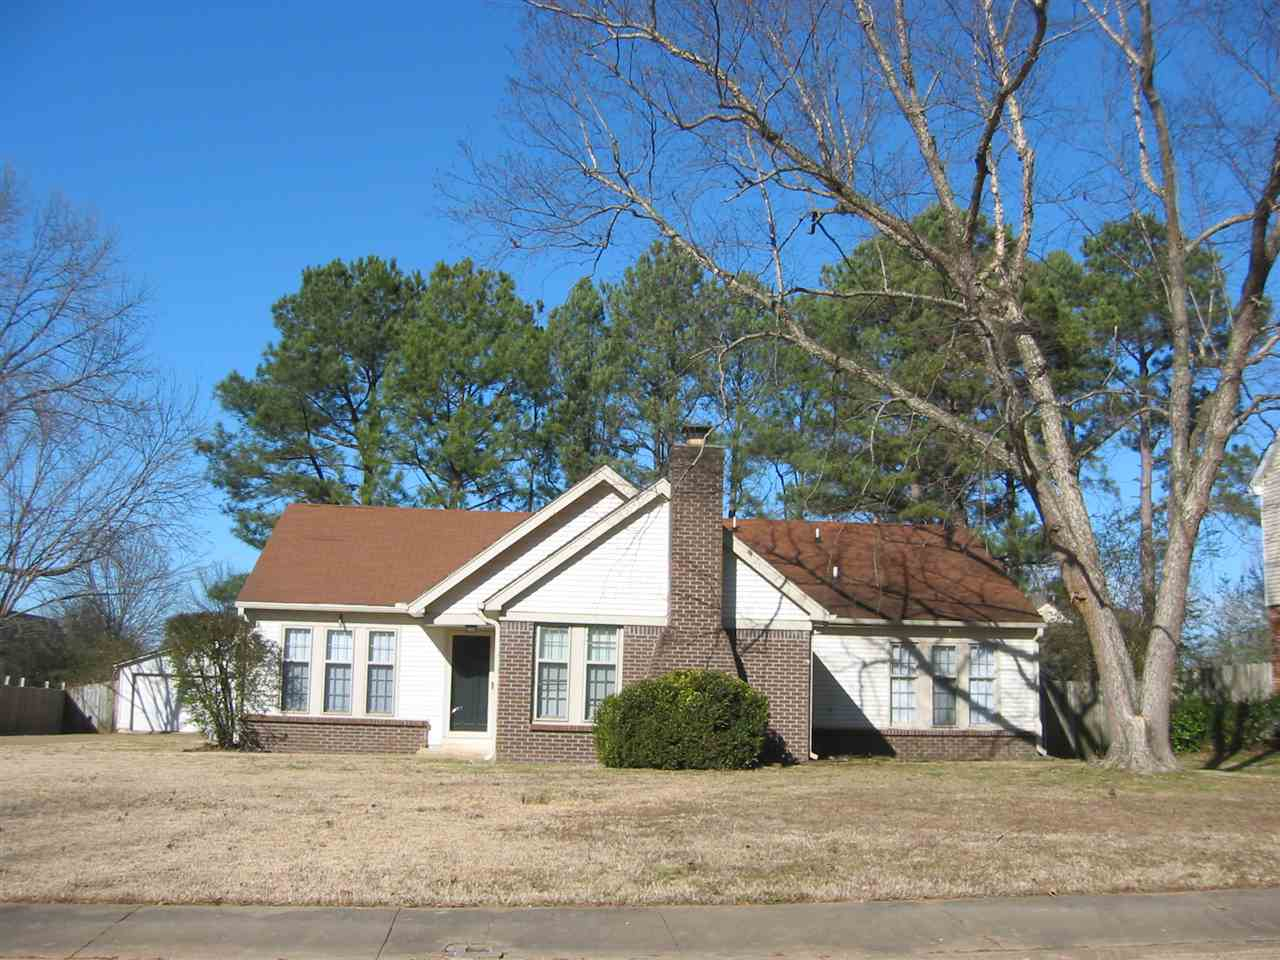 110 W Harpers Ferry Rd, Collierville, TN